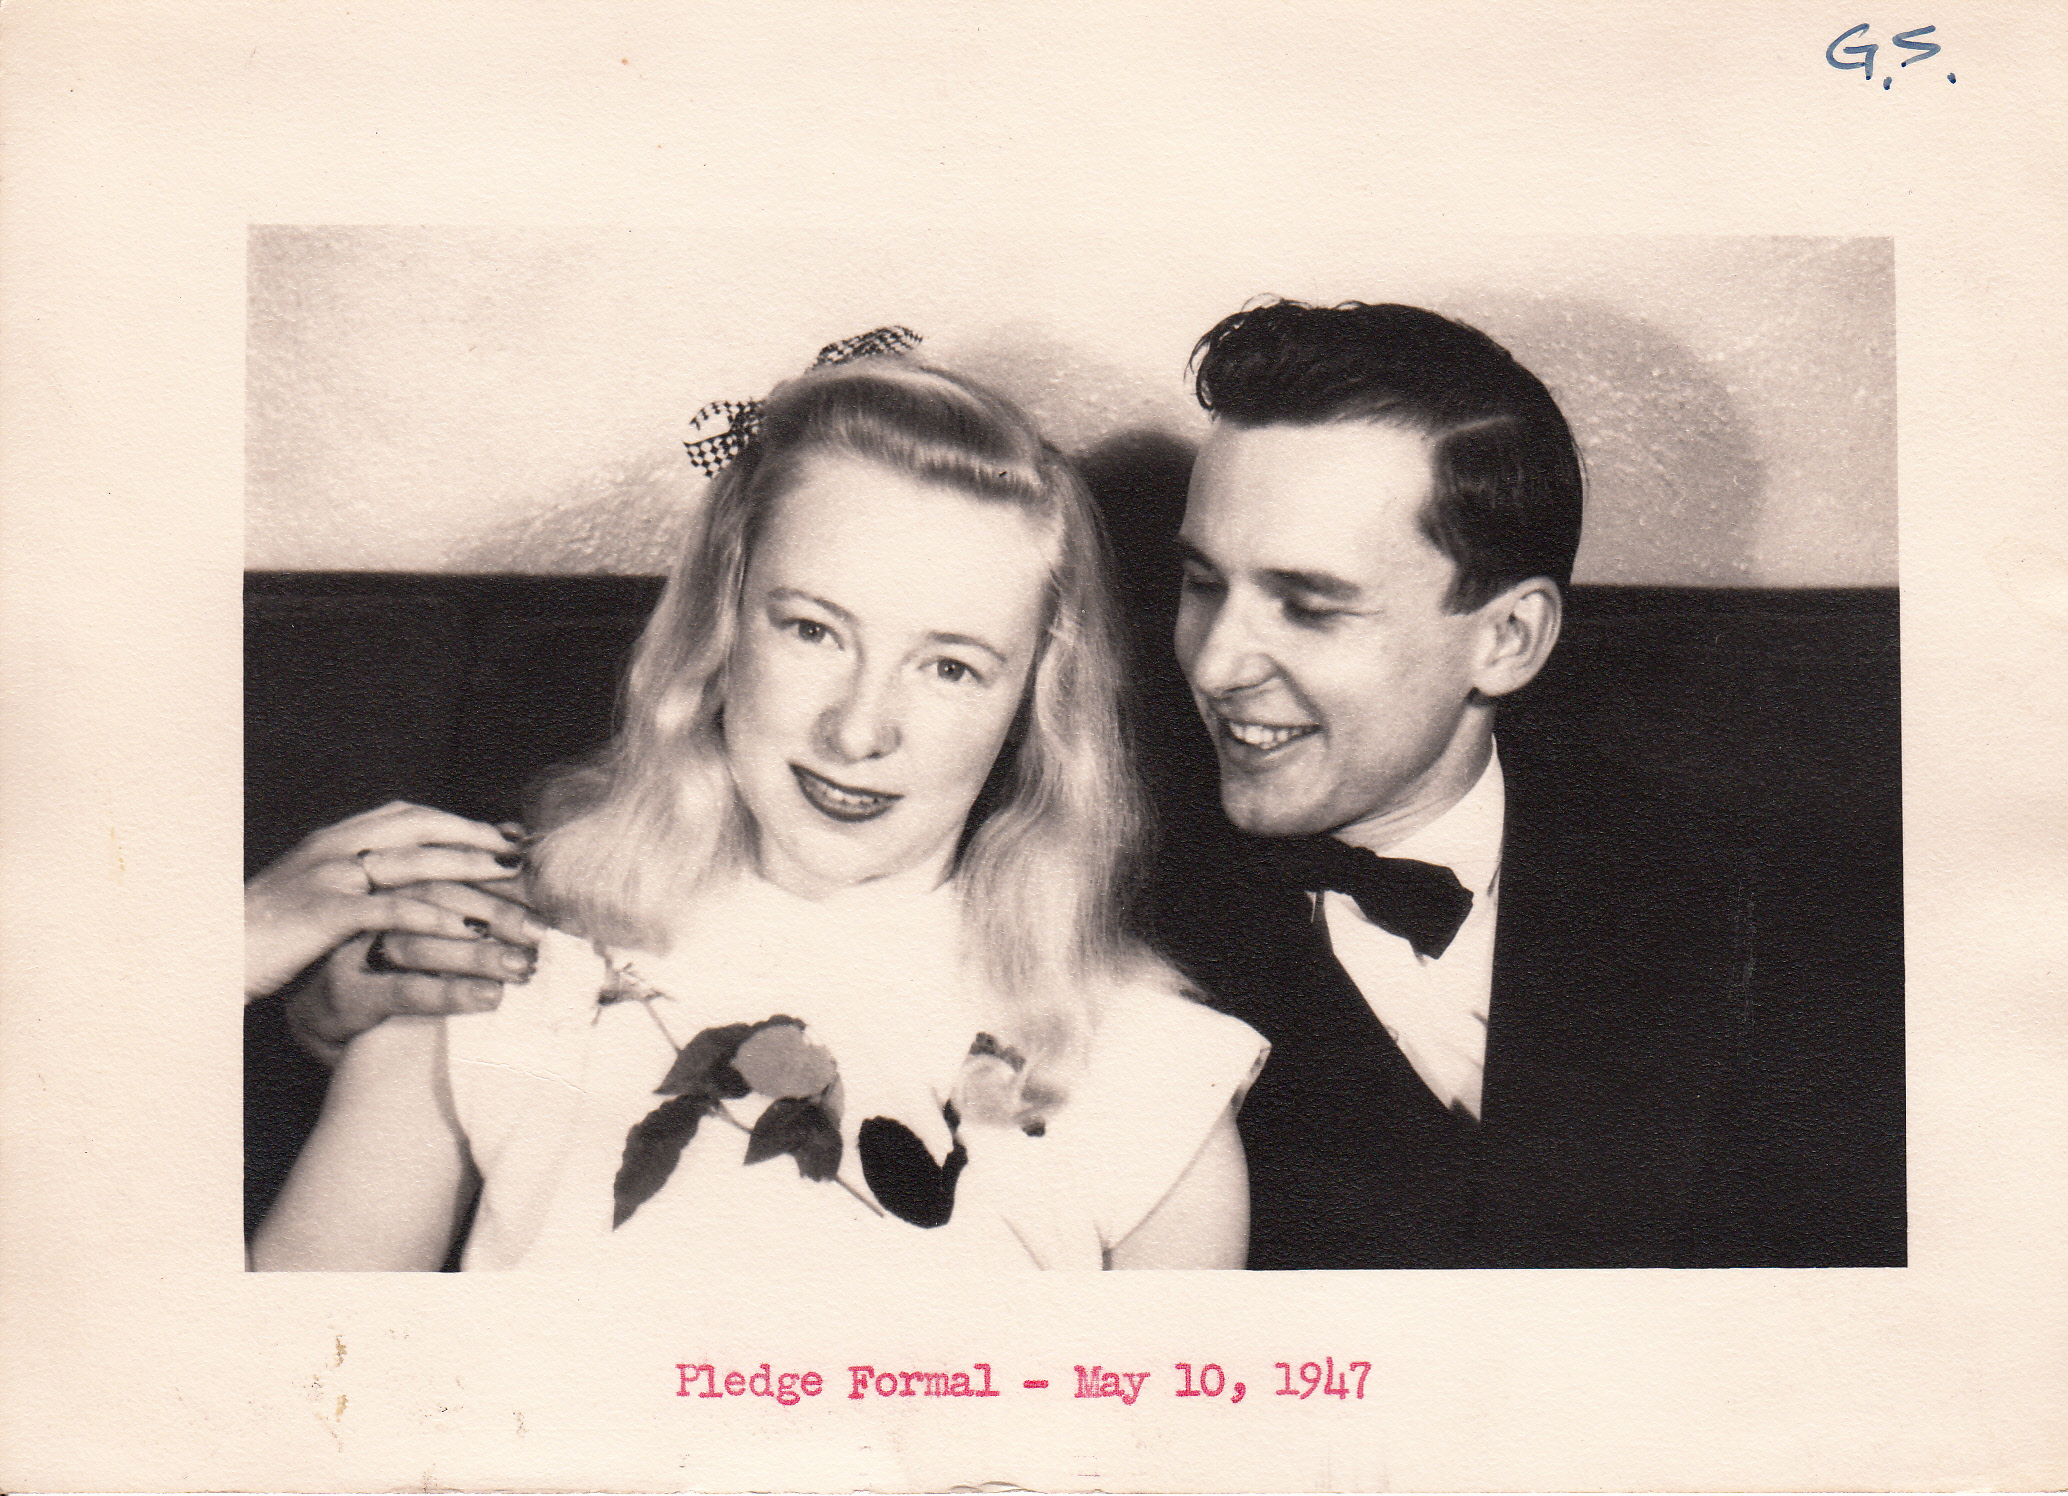 Pledge Formal, 1947